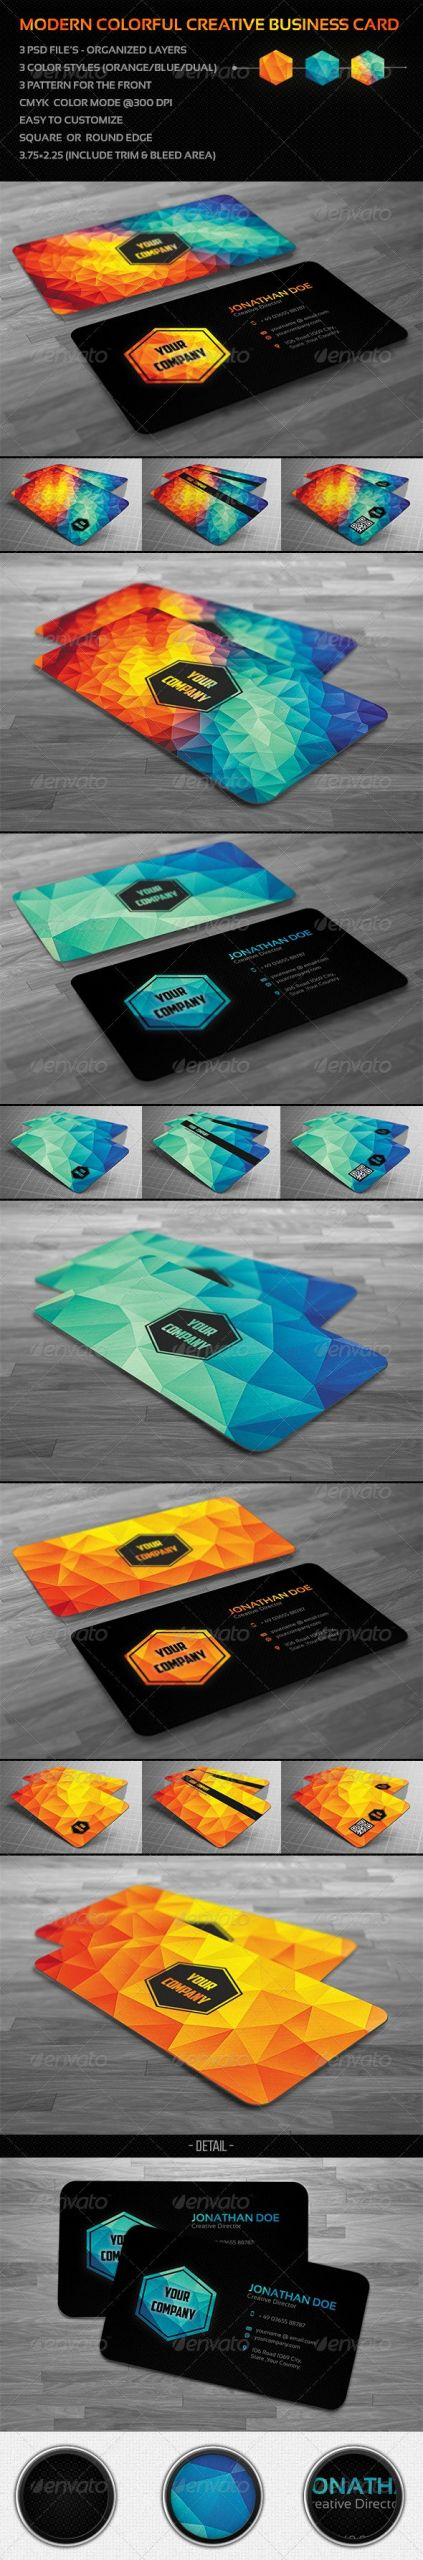 Church Visitor Card Template Generator Lovely Creative Modern Polygon Business Card by Badbugs